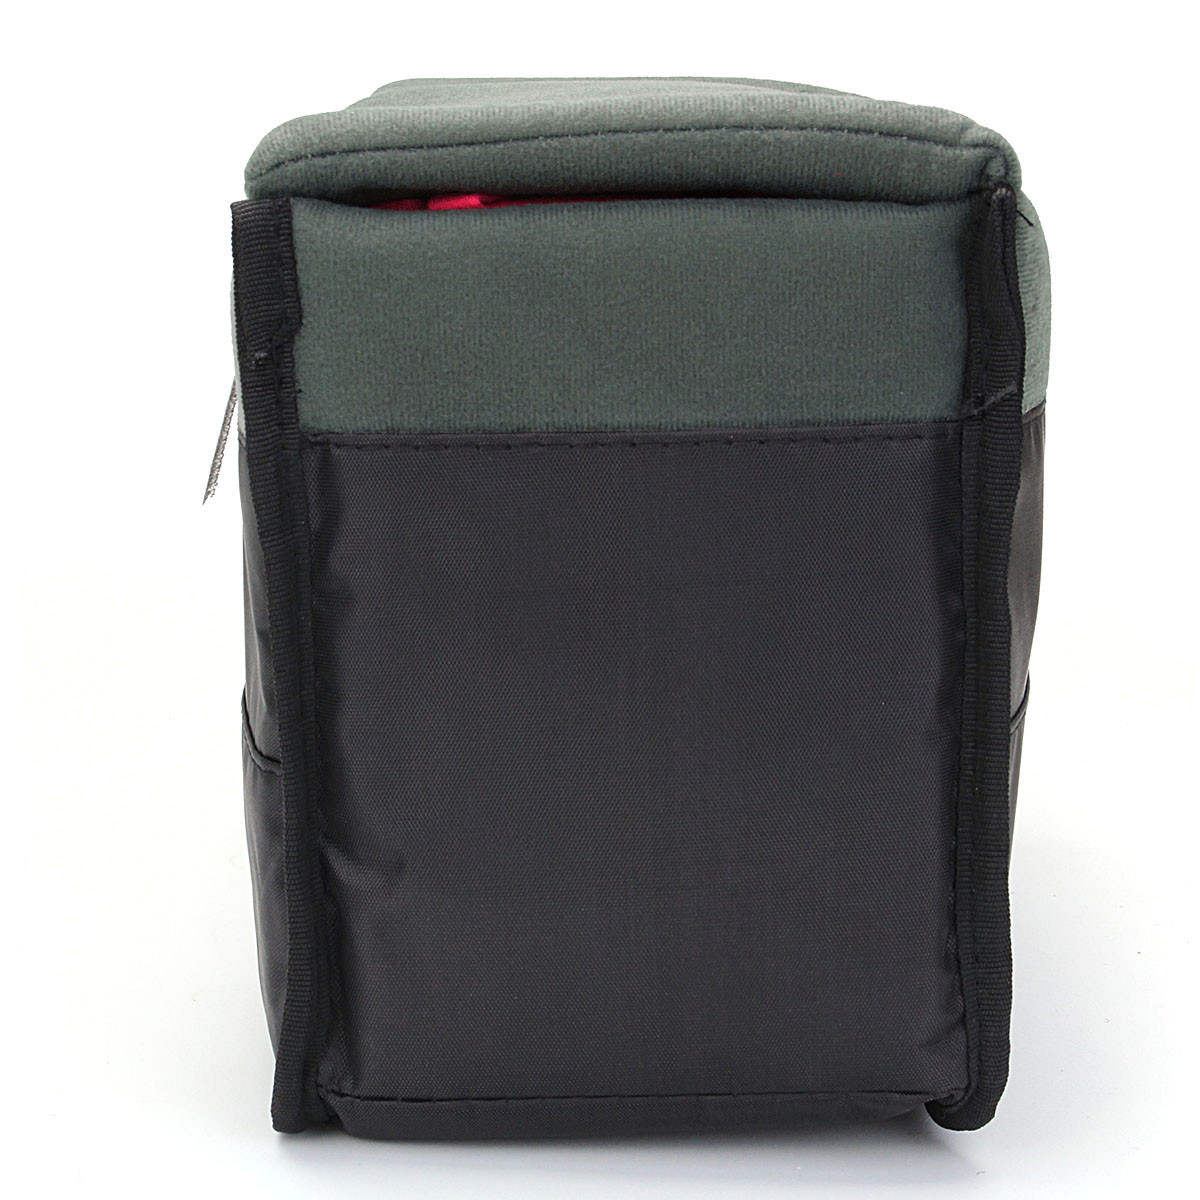 Insert Padded Camera Bag DSLR Inner Folding Divider Partition Protect Case